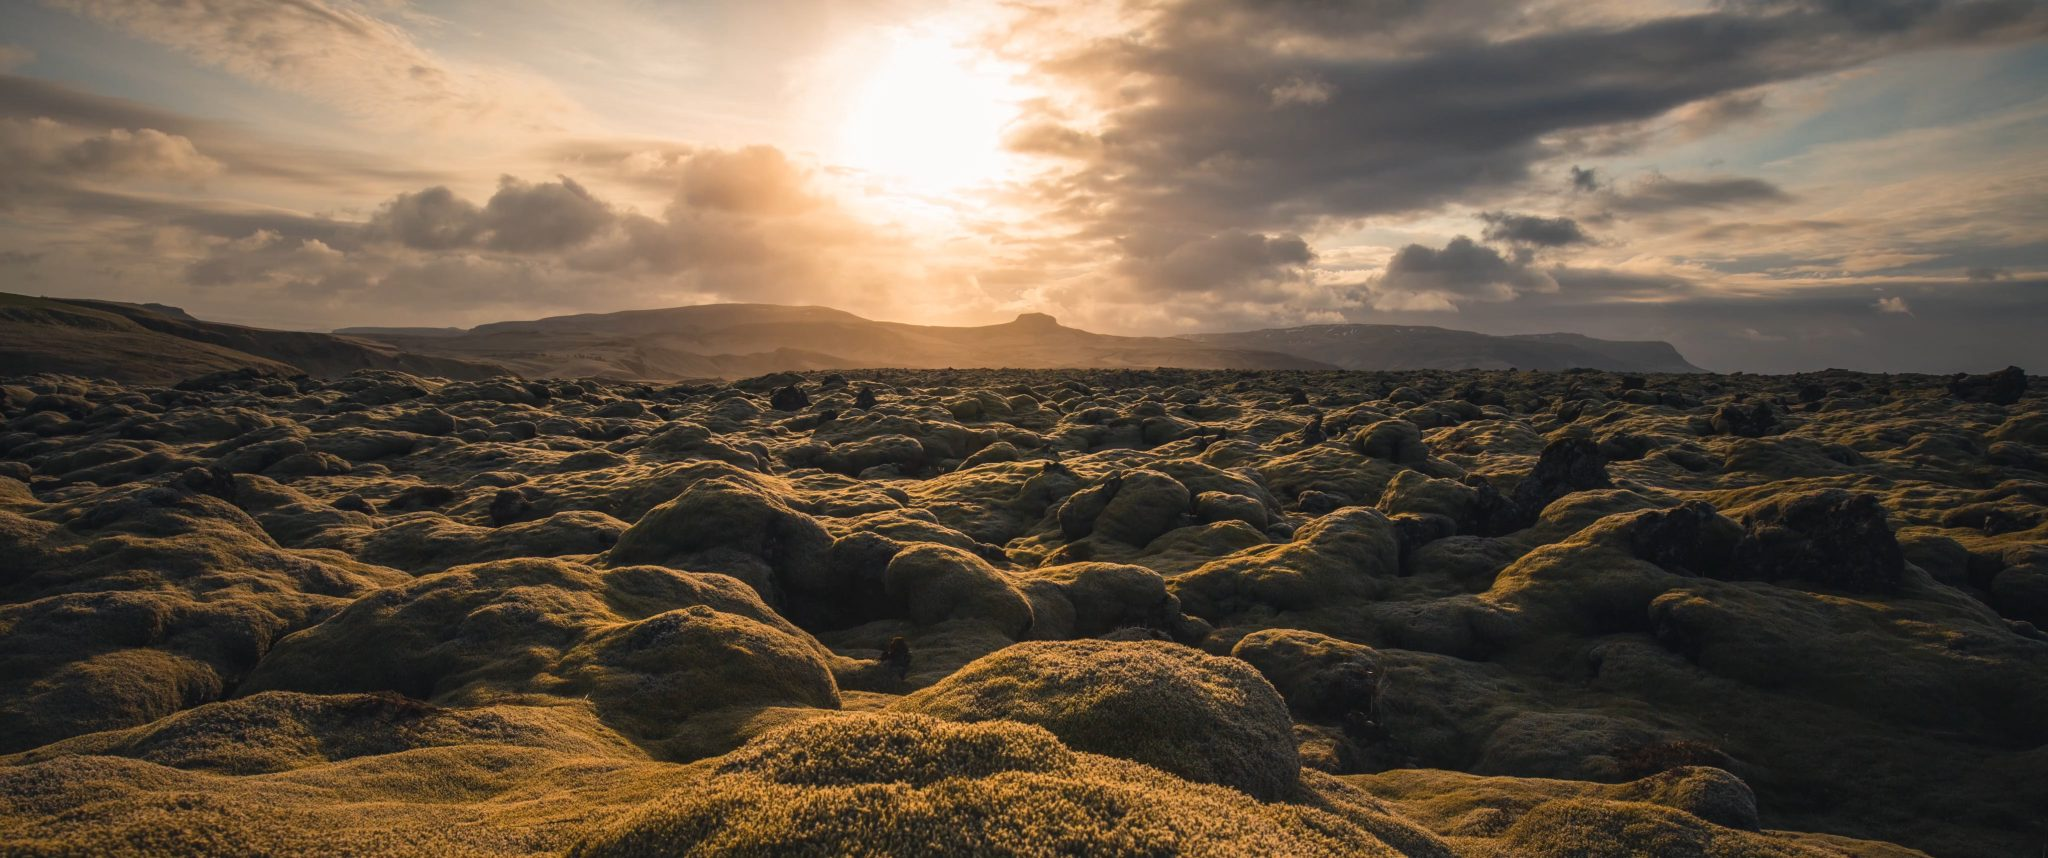 Sun setting above surreal moss landscape